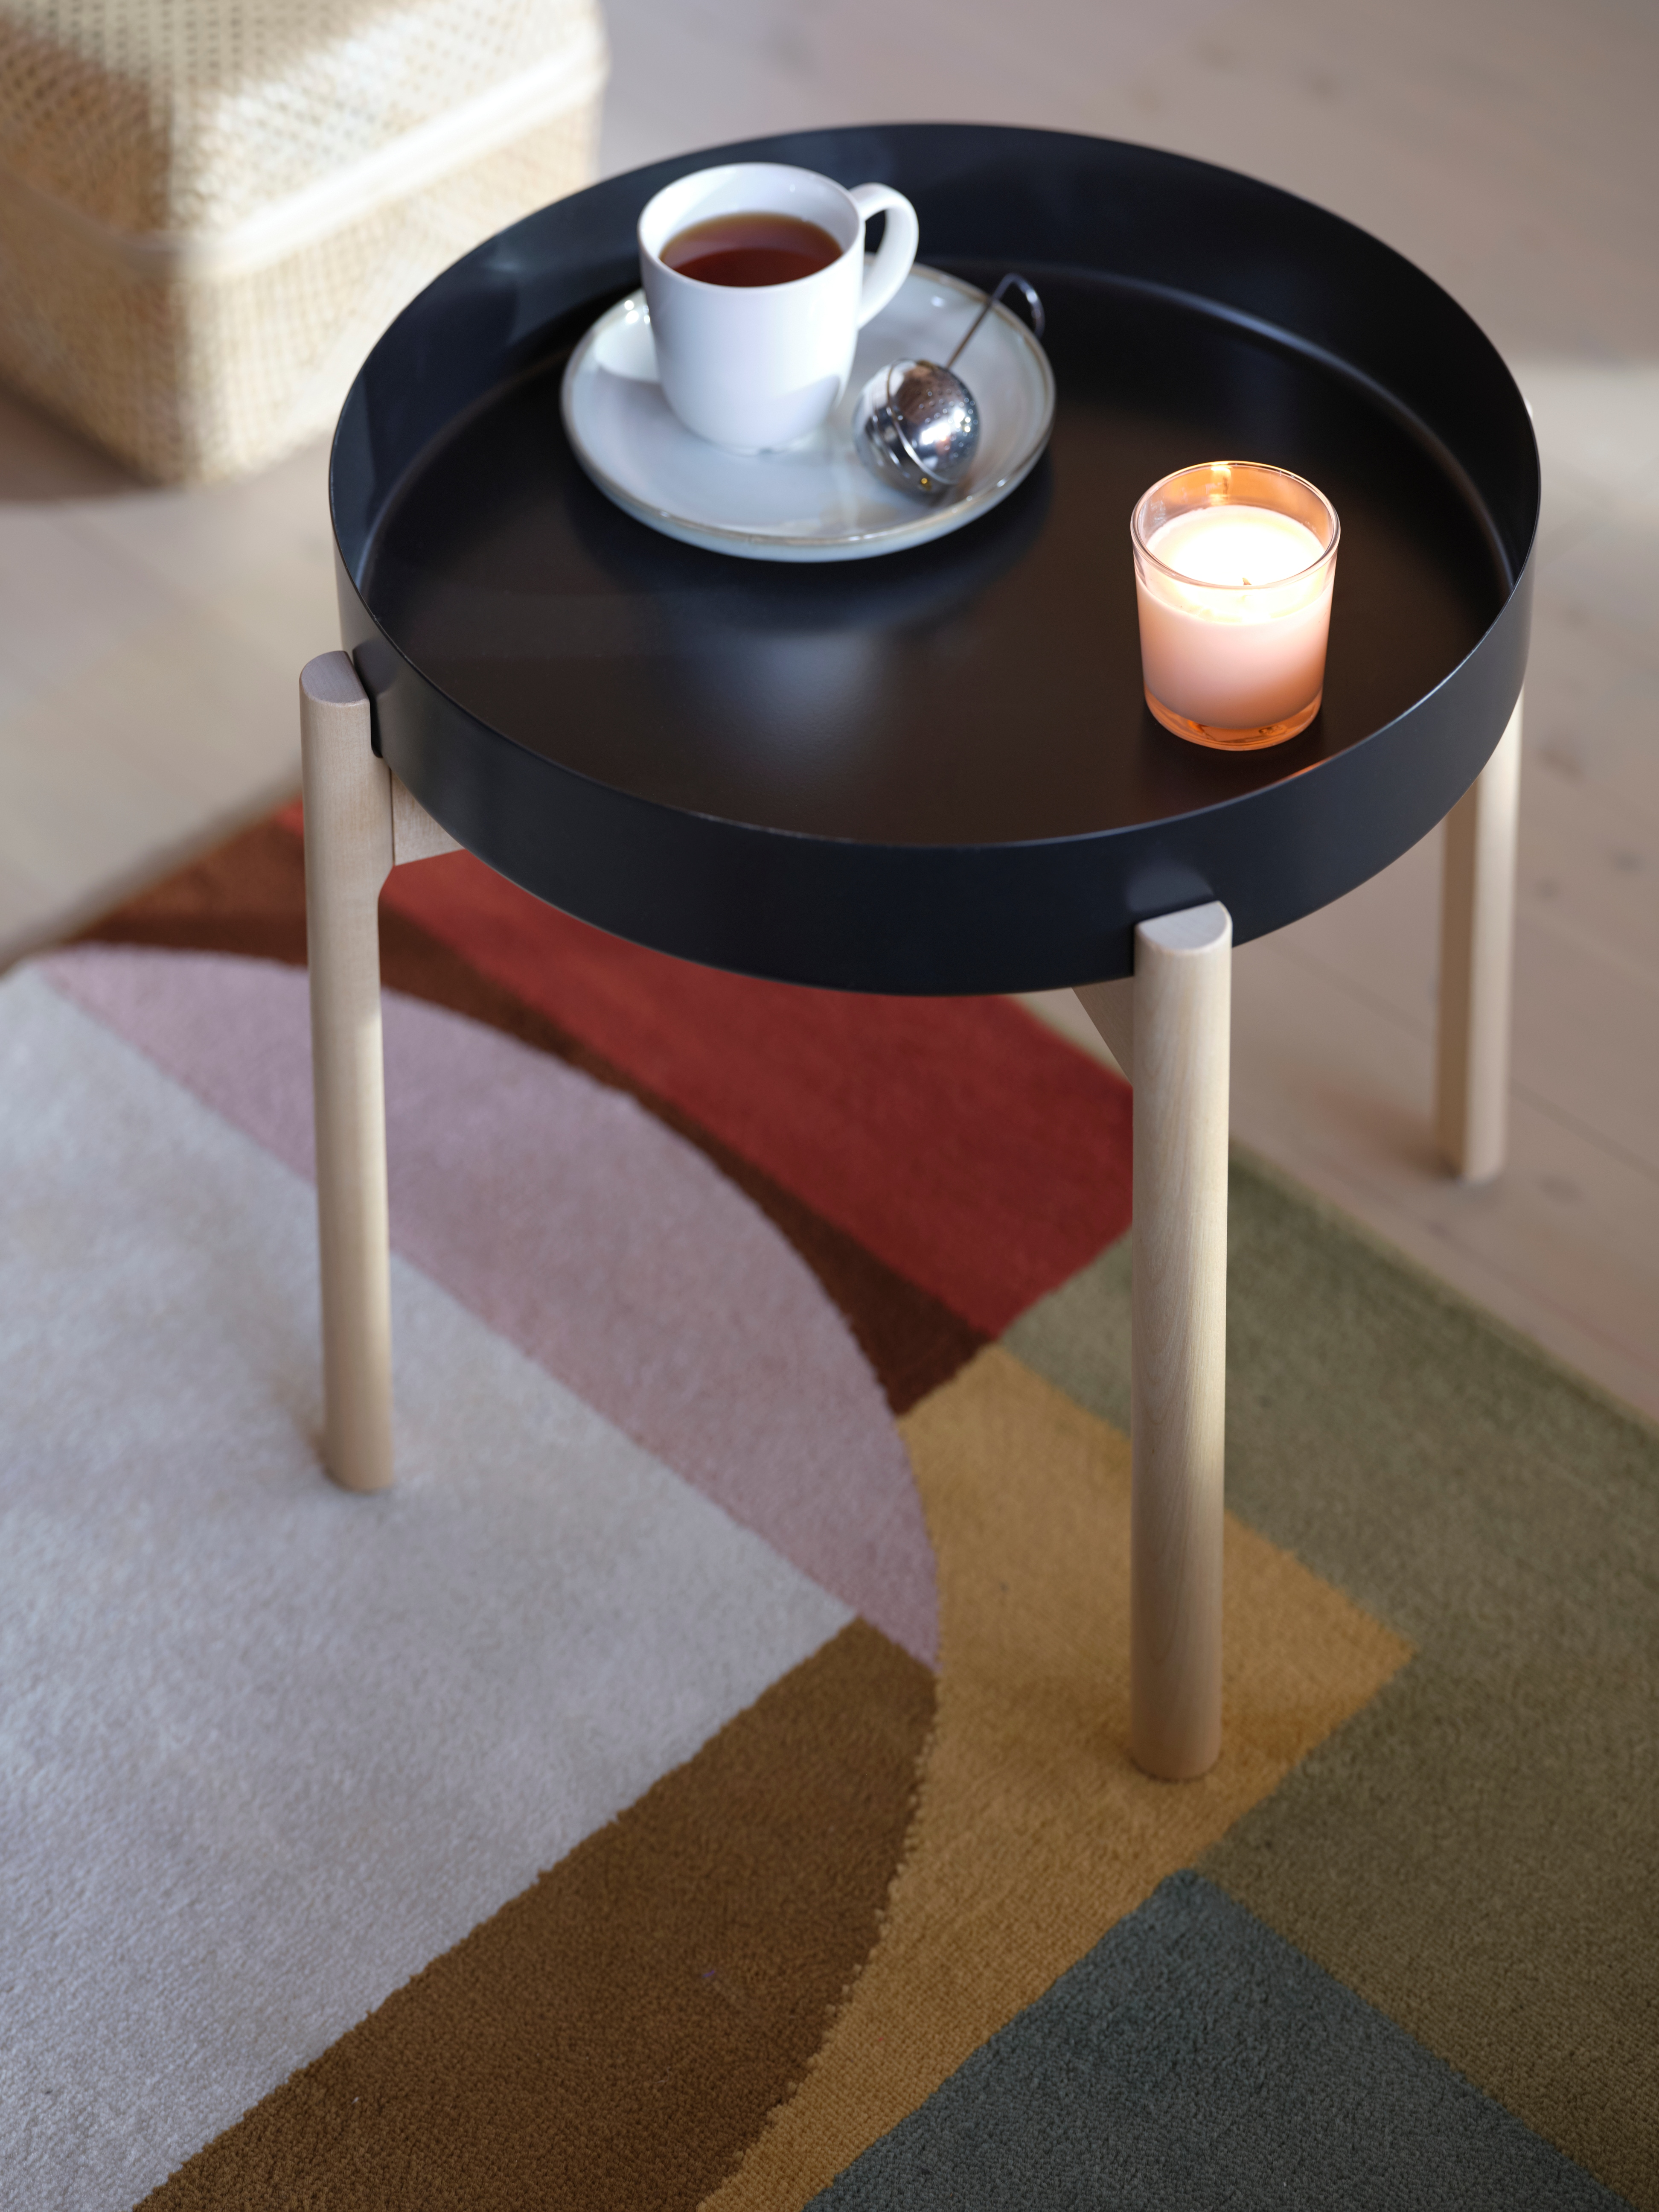 A multicoloured rug with a geometrical pattern, a black YPPERLIG coffee table with birch legs, a cup of tea and a candle.